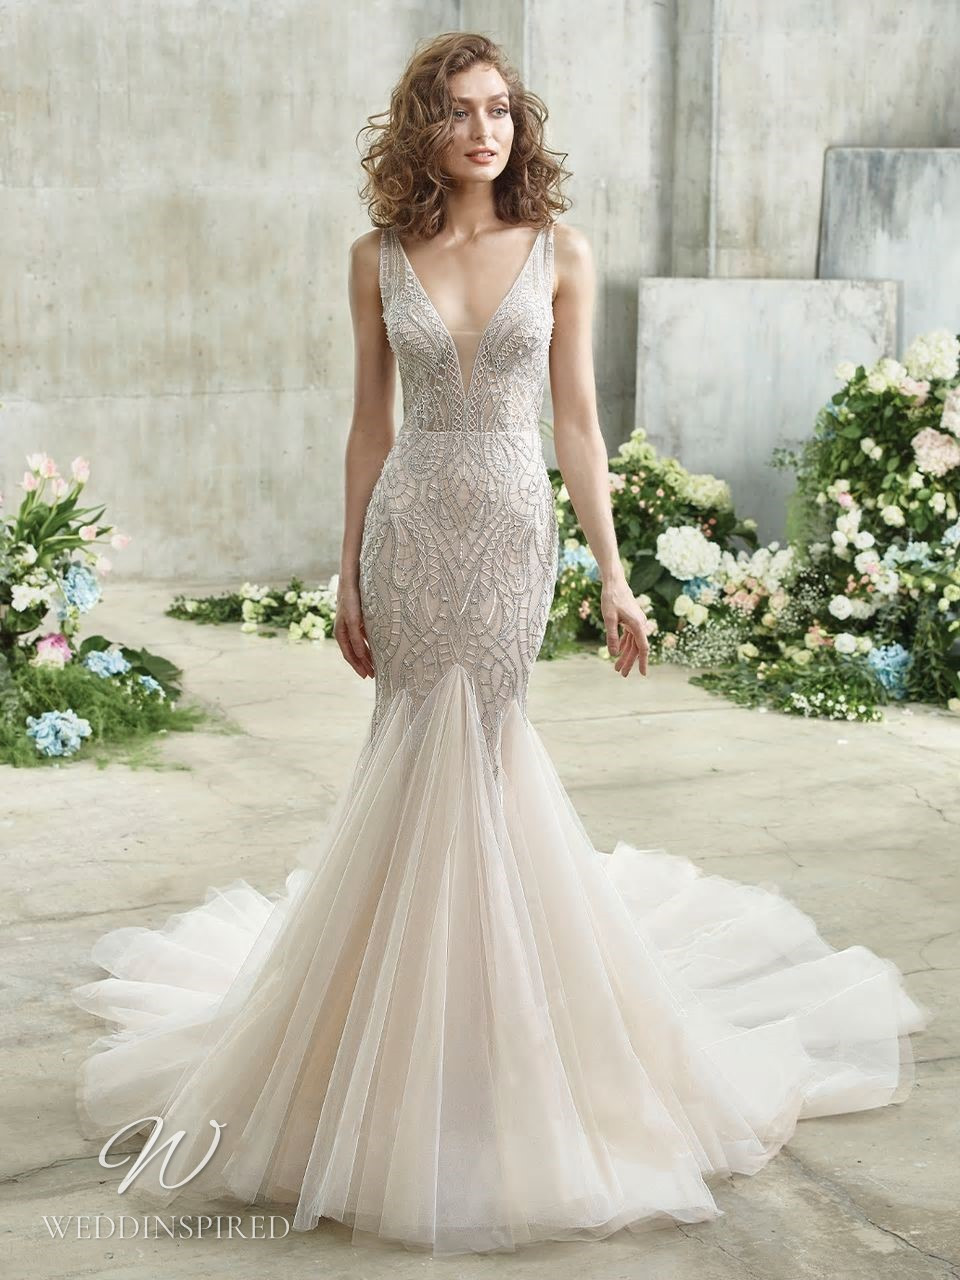 A Badgley Mischka gauzy blush mermaid wedding dress with a tulle skirt, beading and a v neckline